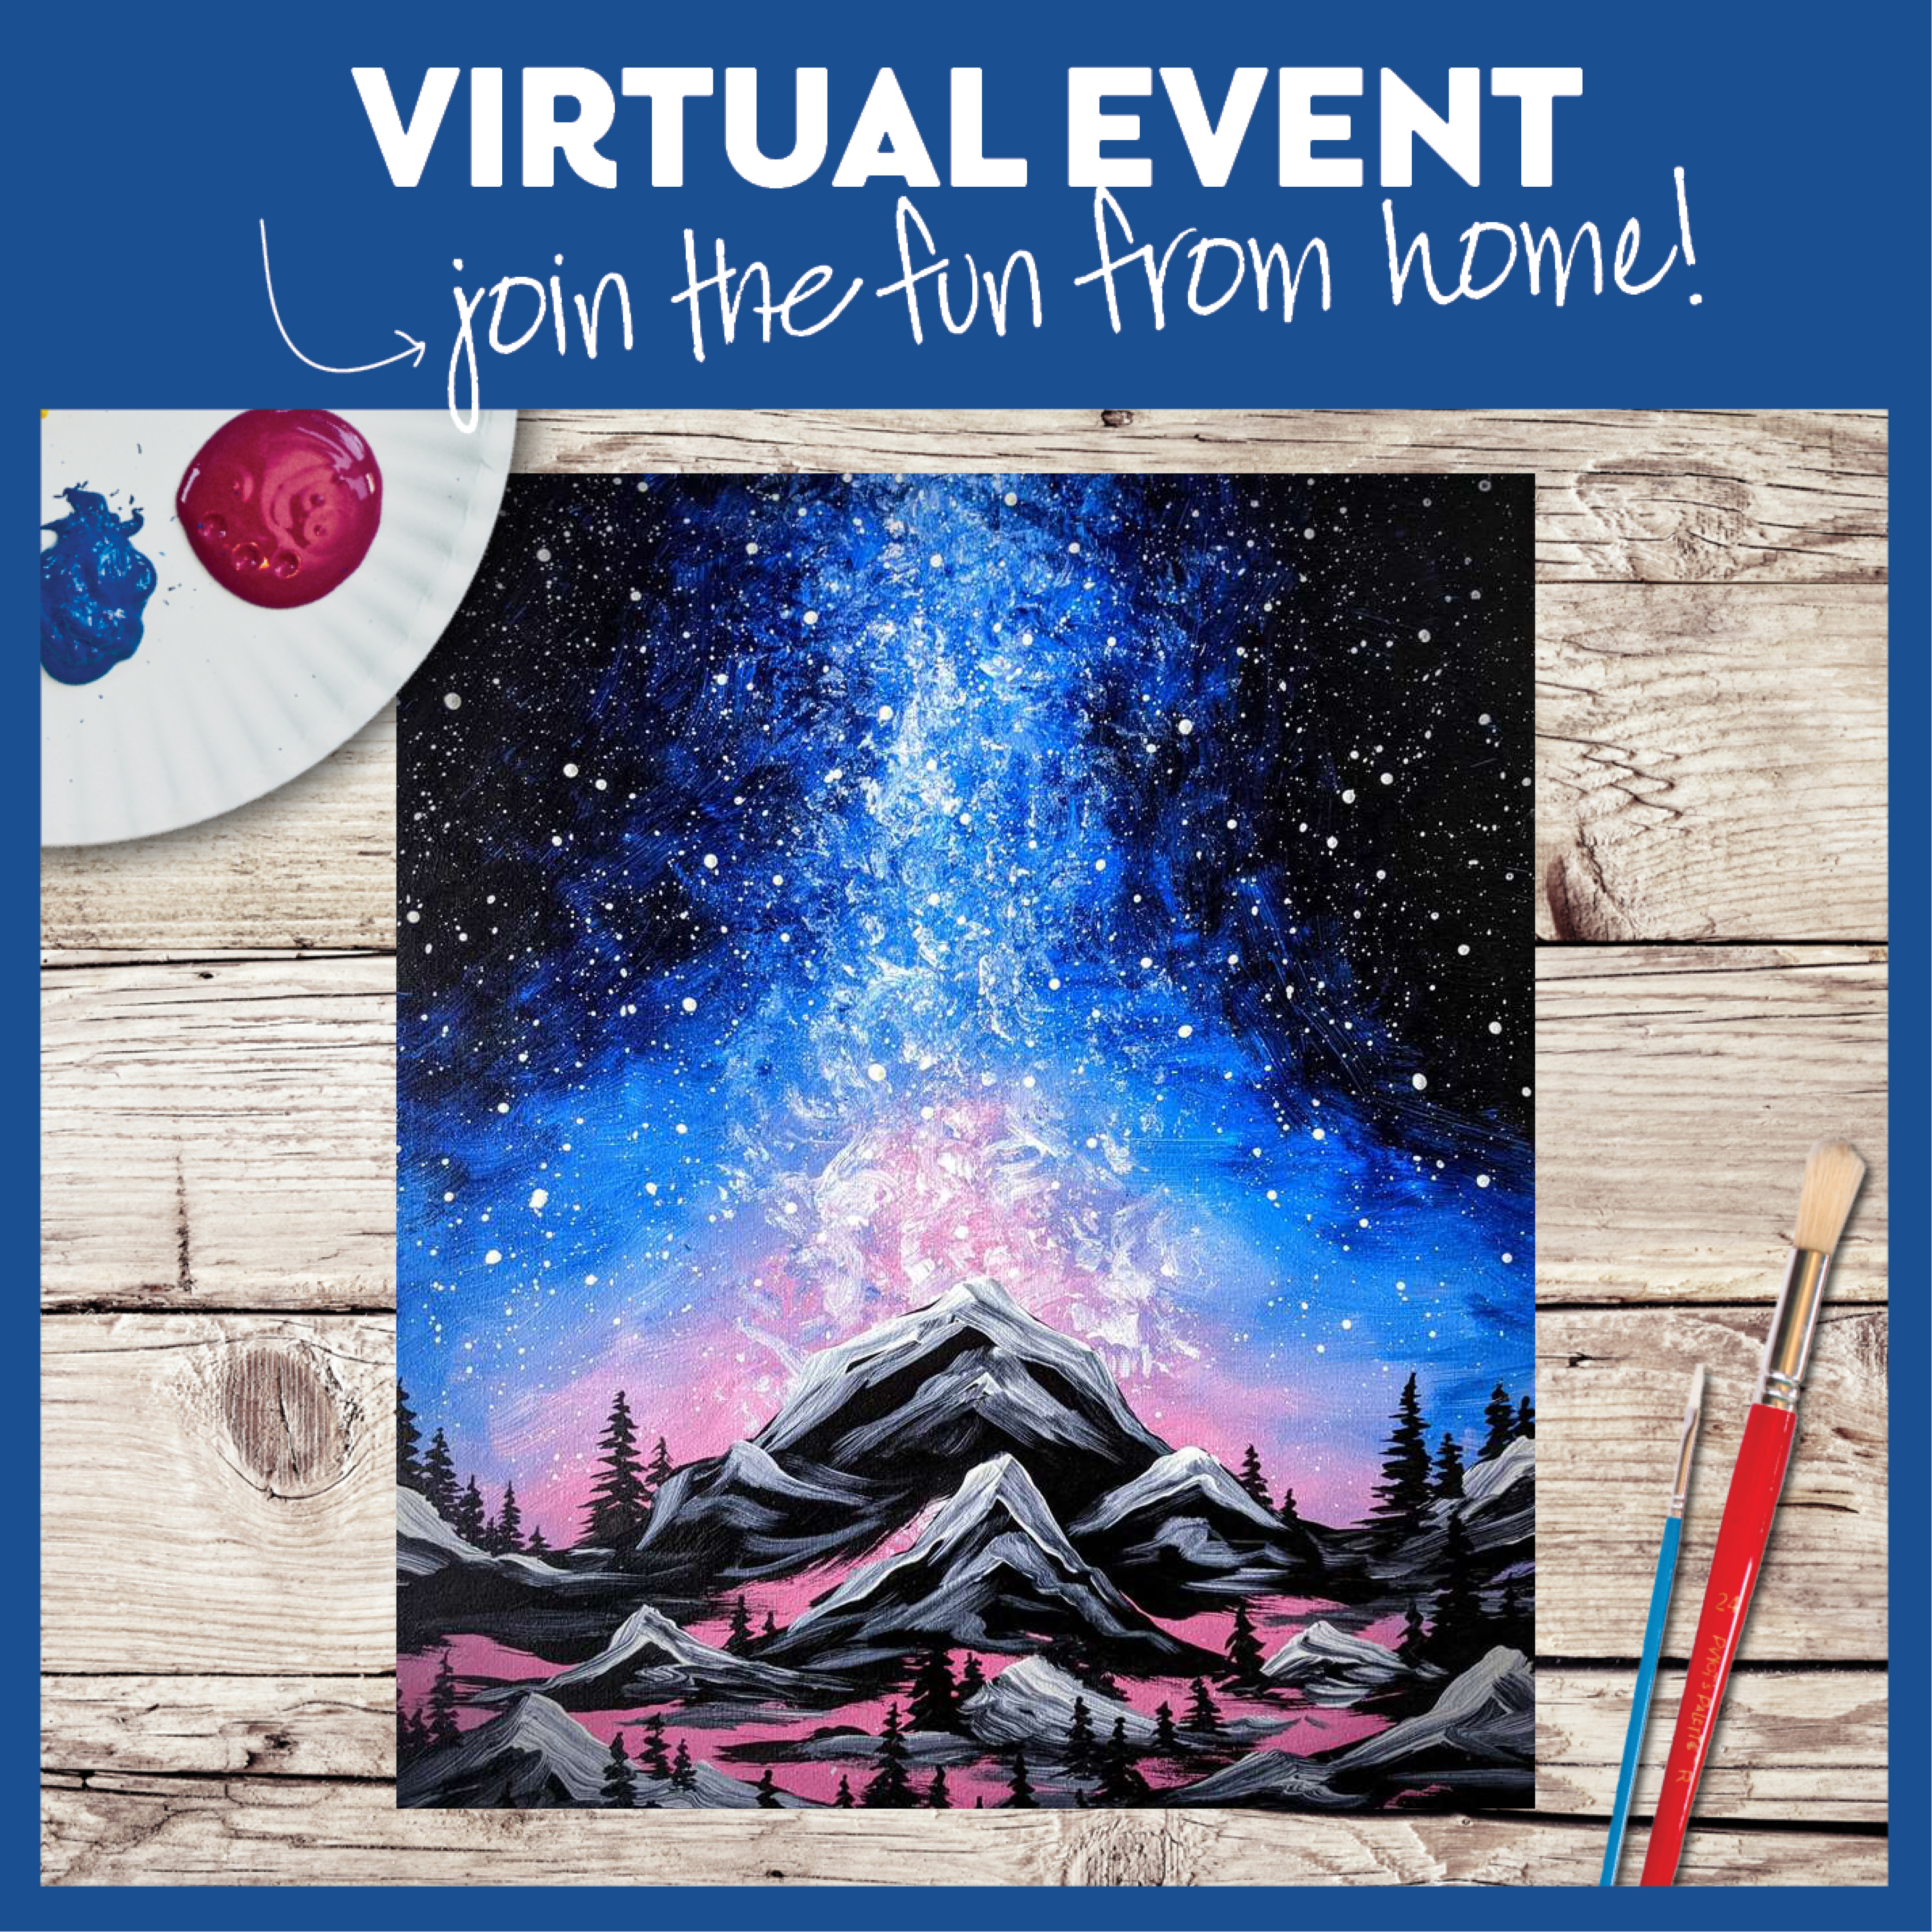 LIVE VIRTUAL CLASS: BRIGHT MOUNTAIN PEAK - WITH ART KIT OR PROVIDE YOUR OWN SUPPLIES